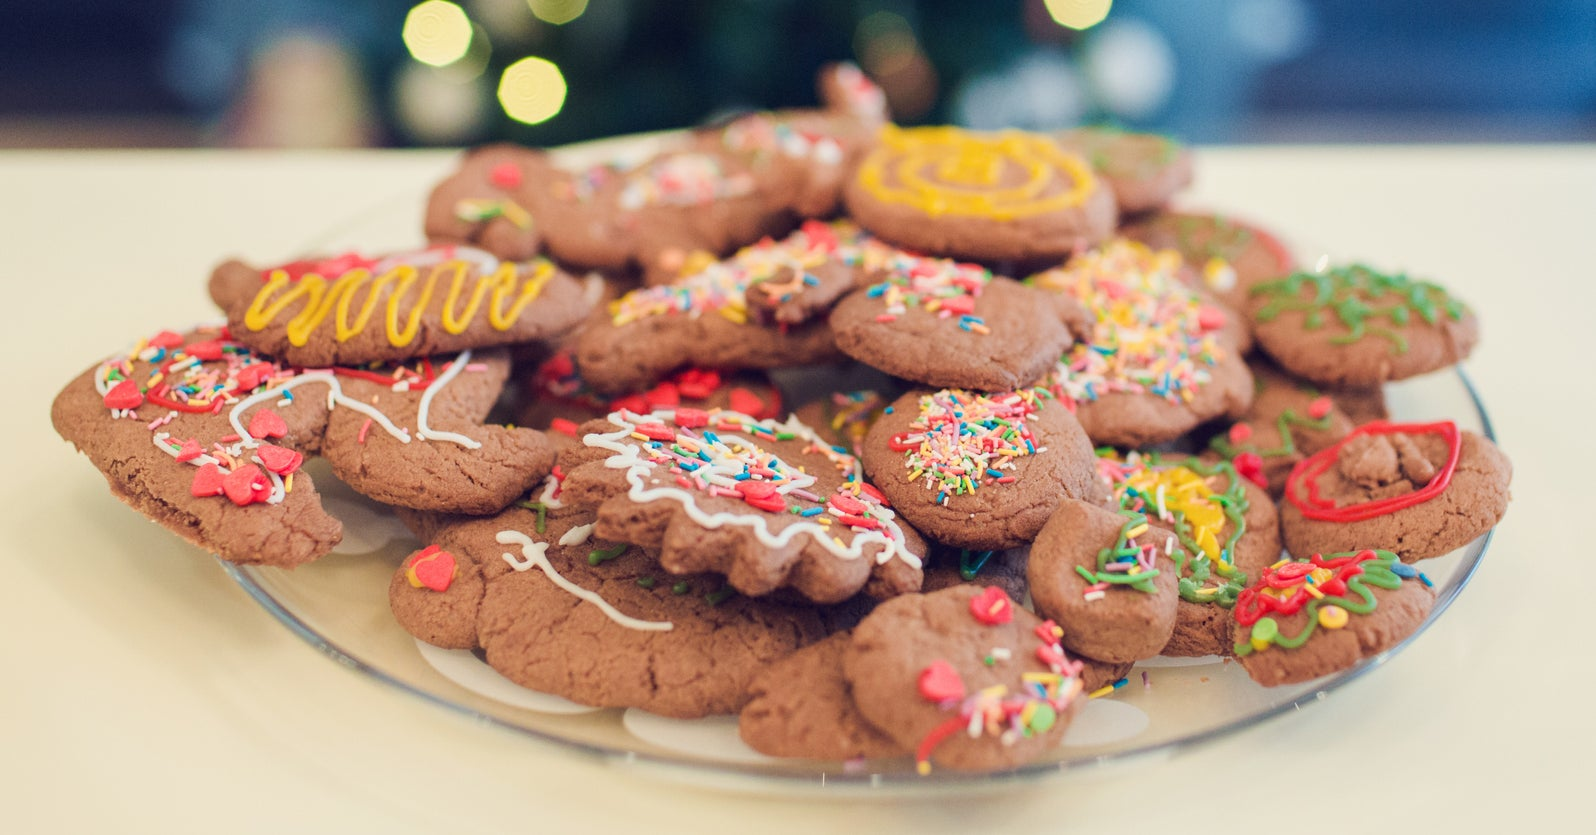 Design Some Holiday Cookies And We'll Tell You What You're Getting For Christmas